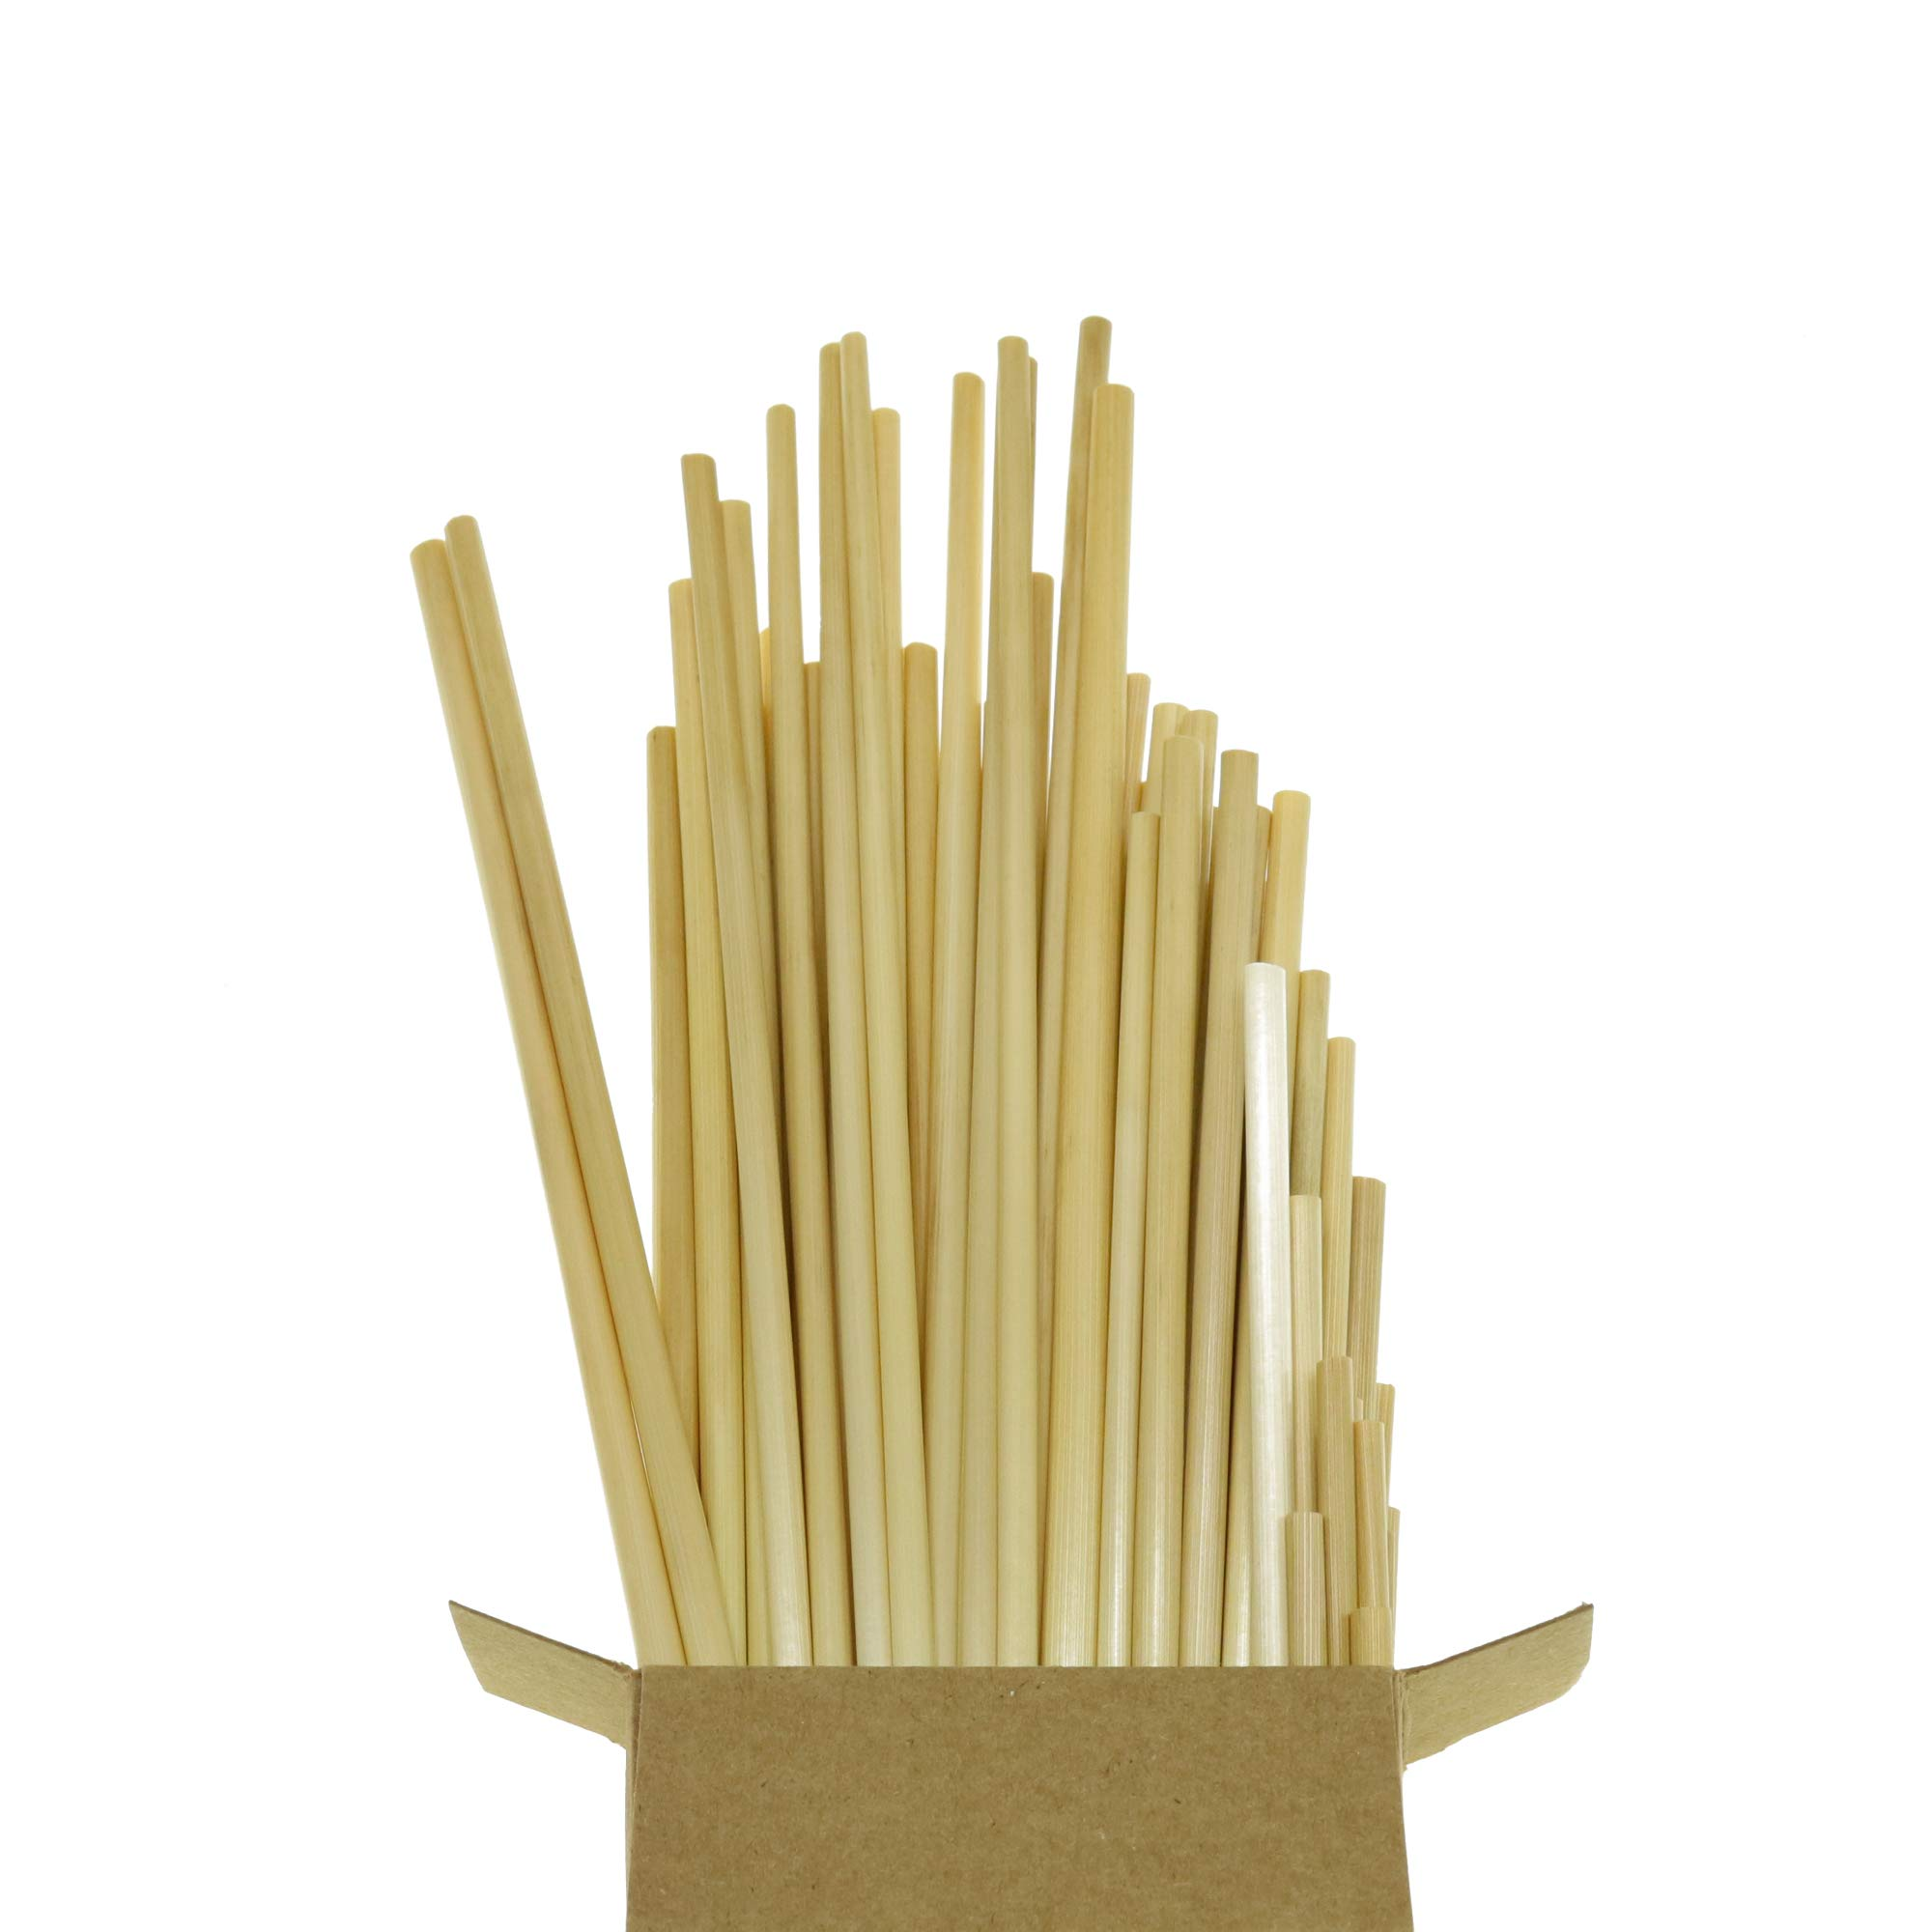 Wheat Disposable Drinking Straws, Eco Friendly, Biodegradable, Sustainable Natural Alternative to Plastic 7.75 inches, 120 straws Per Pack